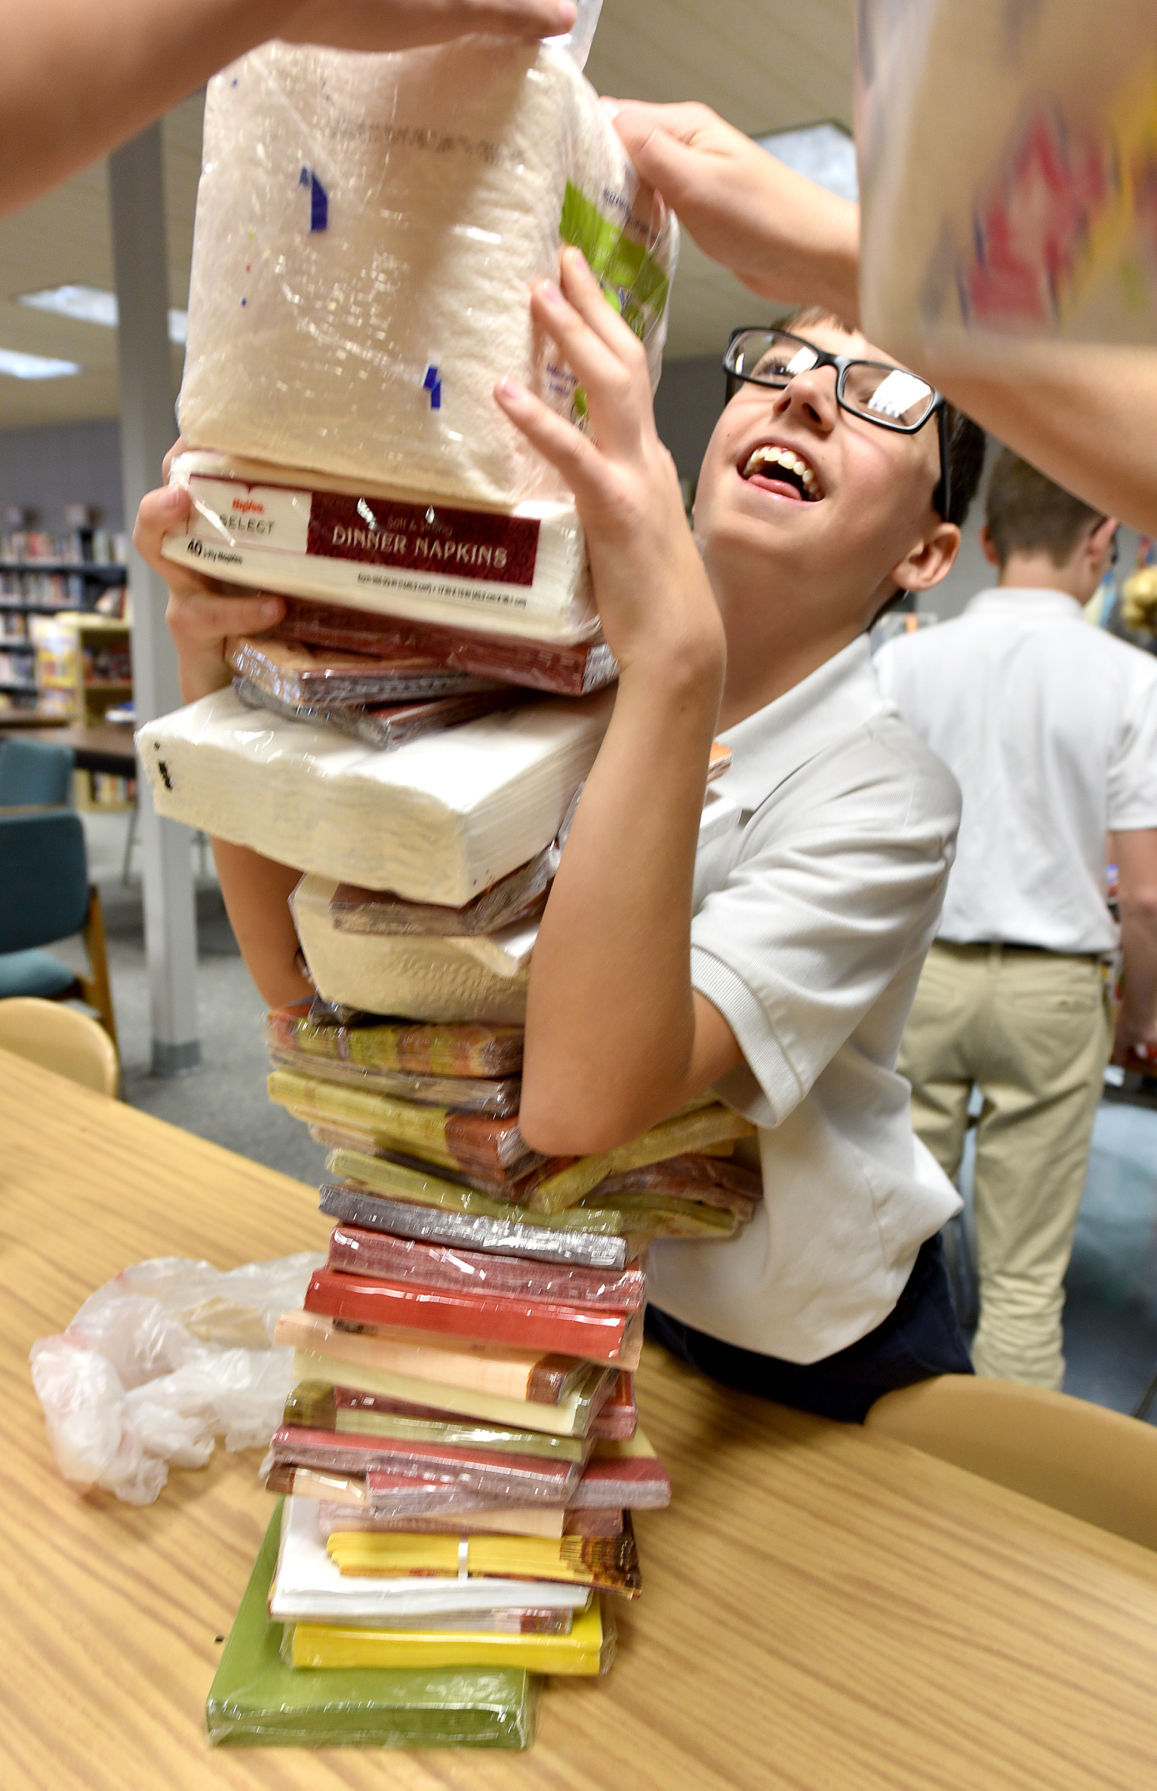 horlyk thankful students pack boxes so others can feast